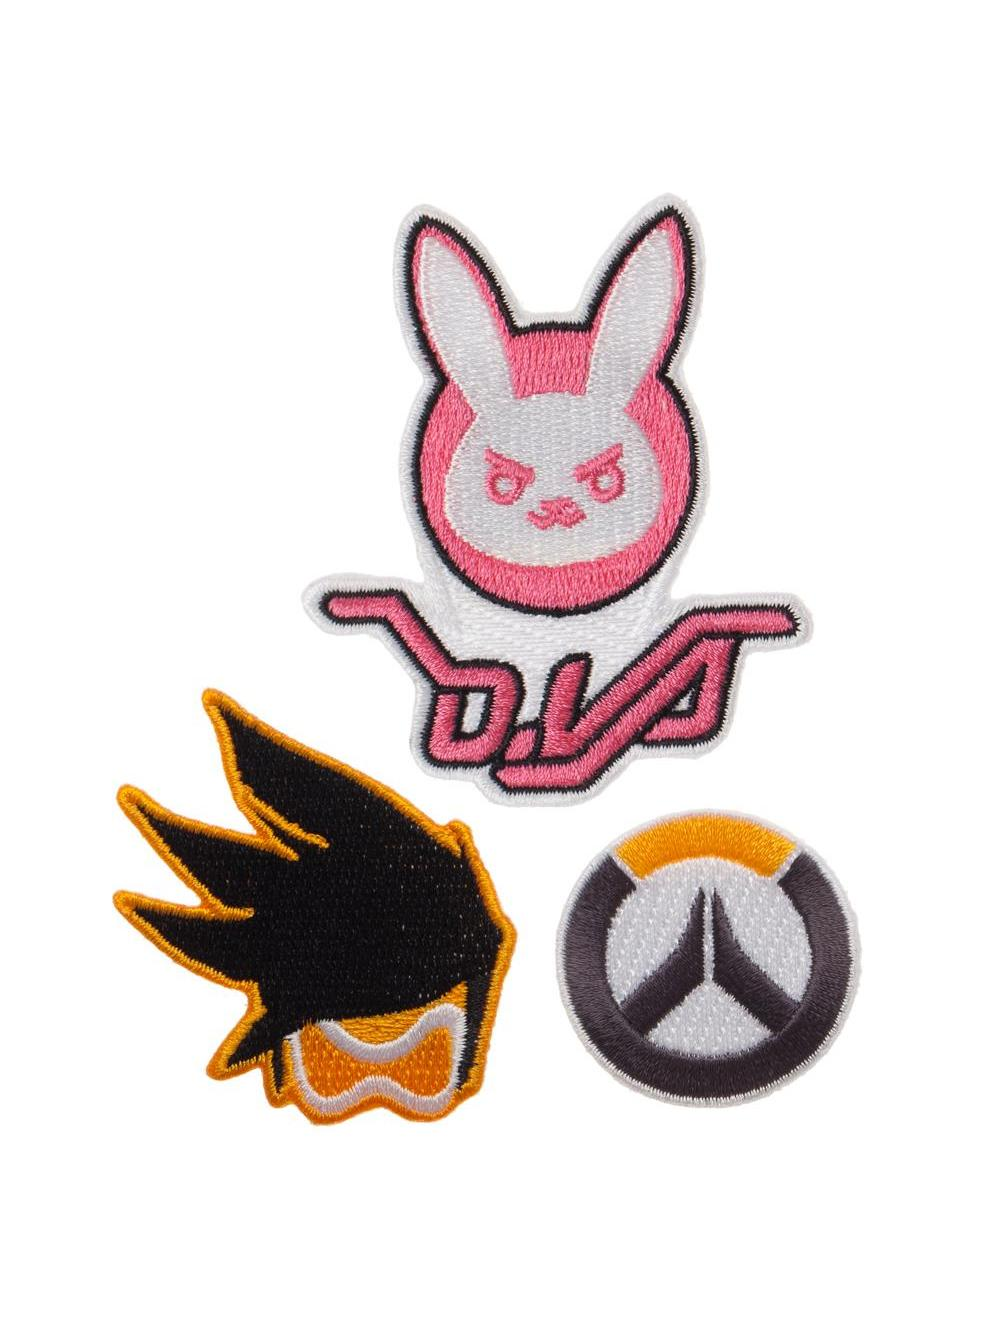 Overwatch 3 Piece Patch Set